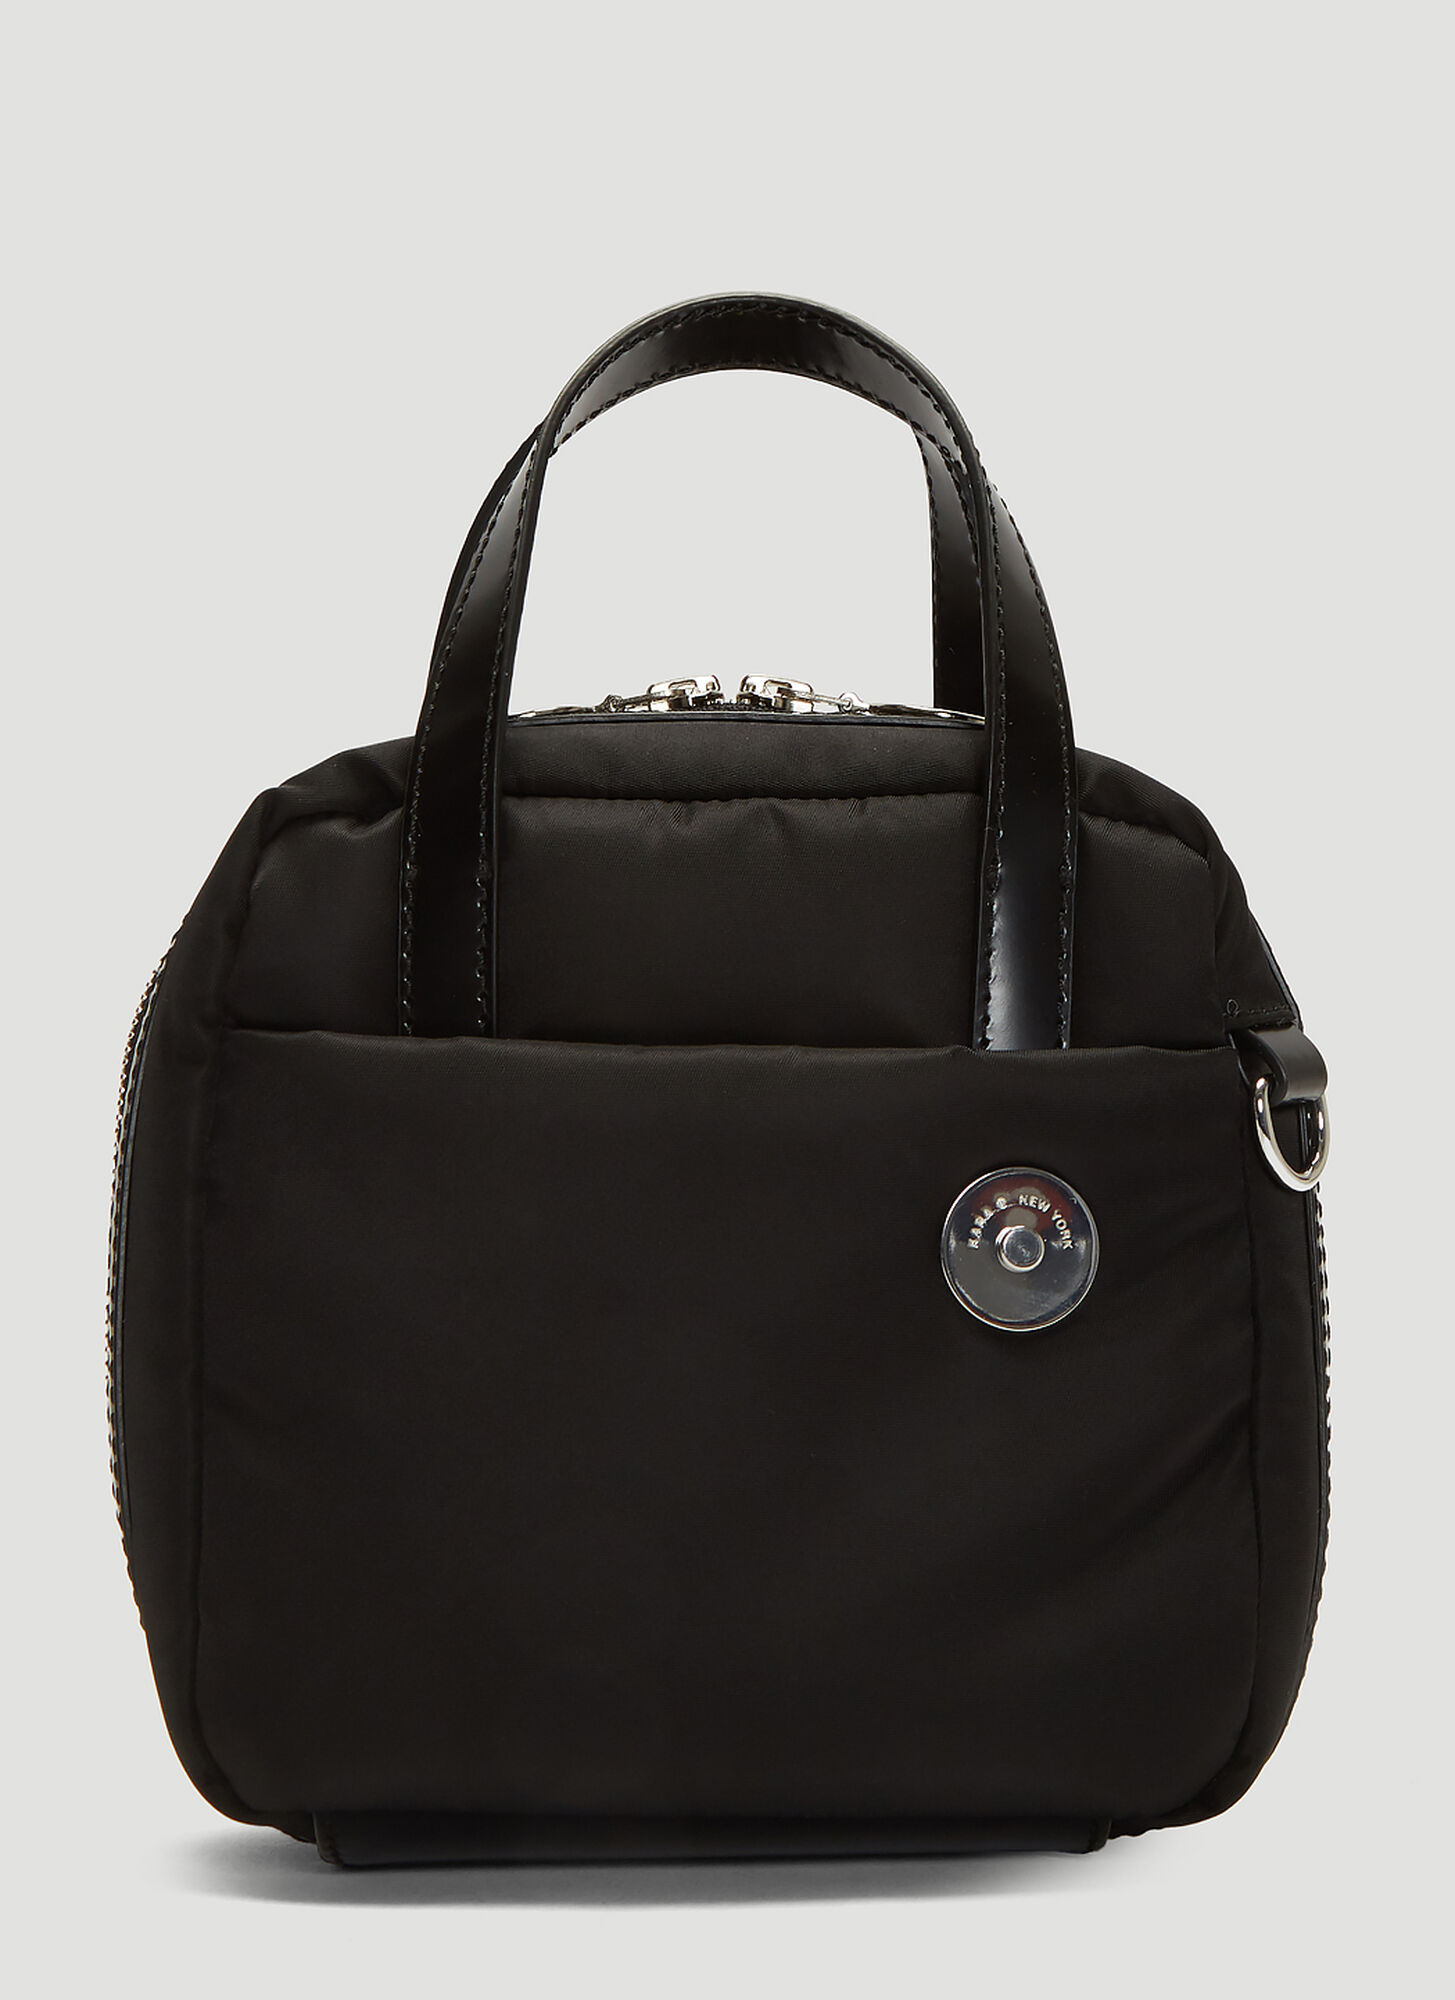 Kara Brick Bag in Black